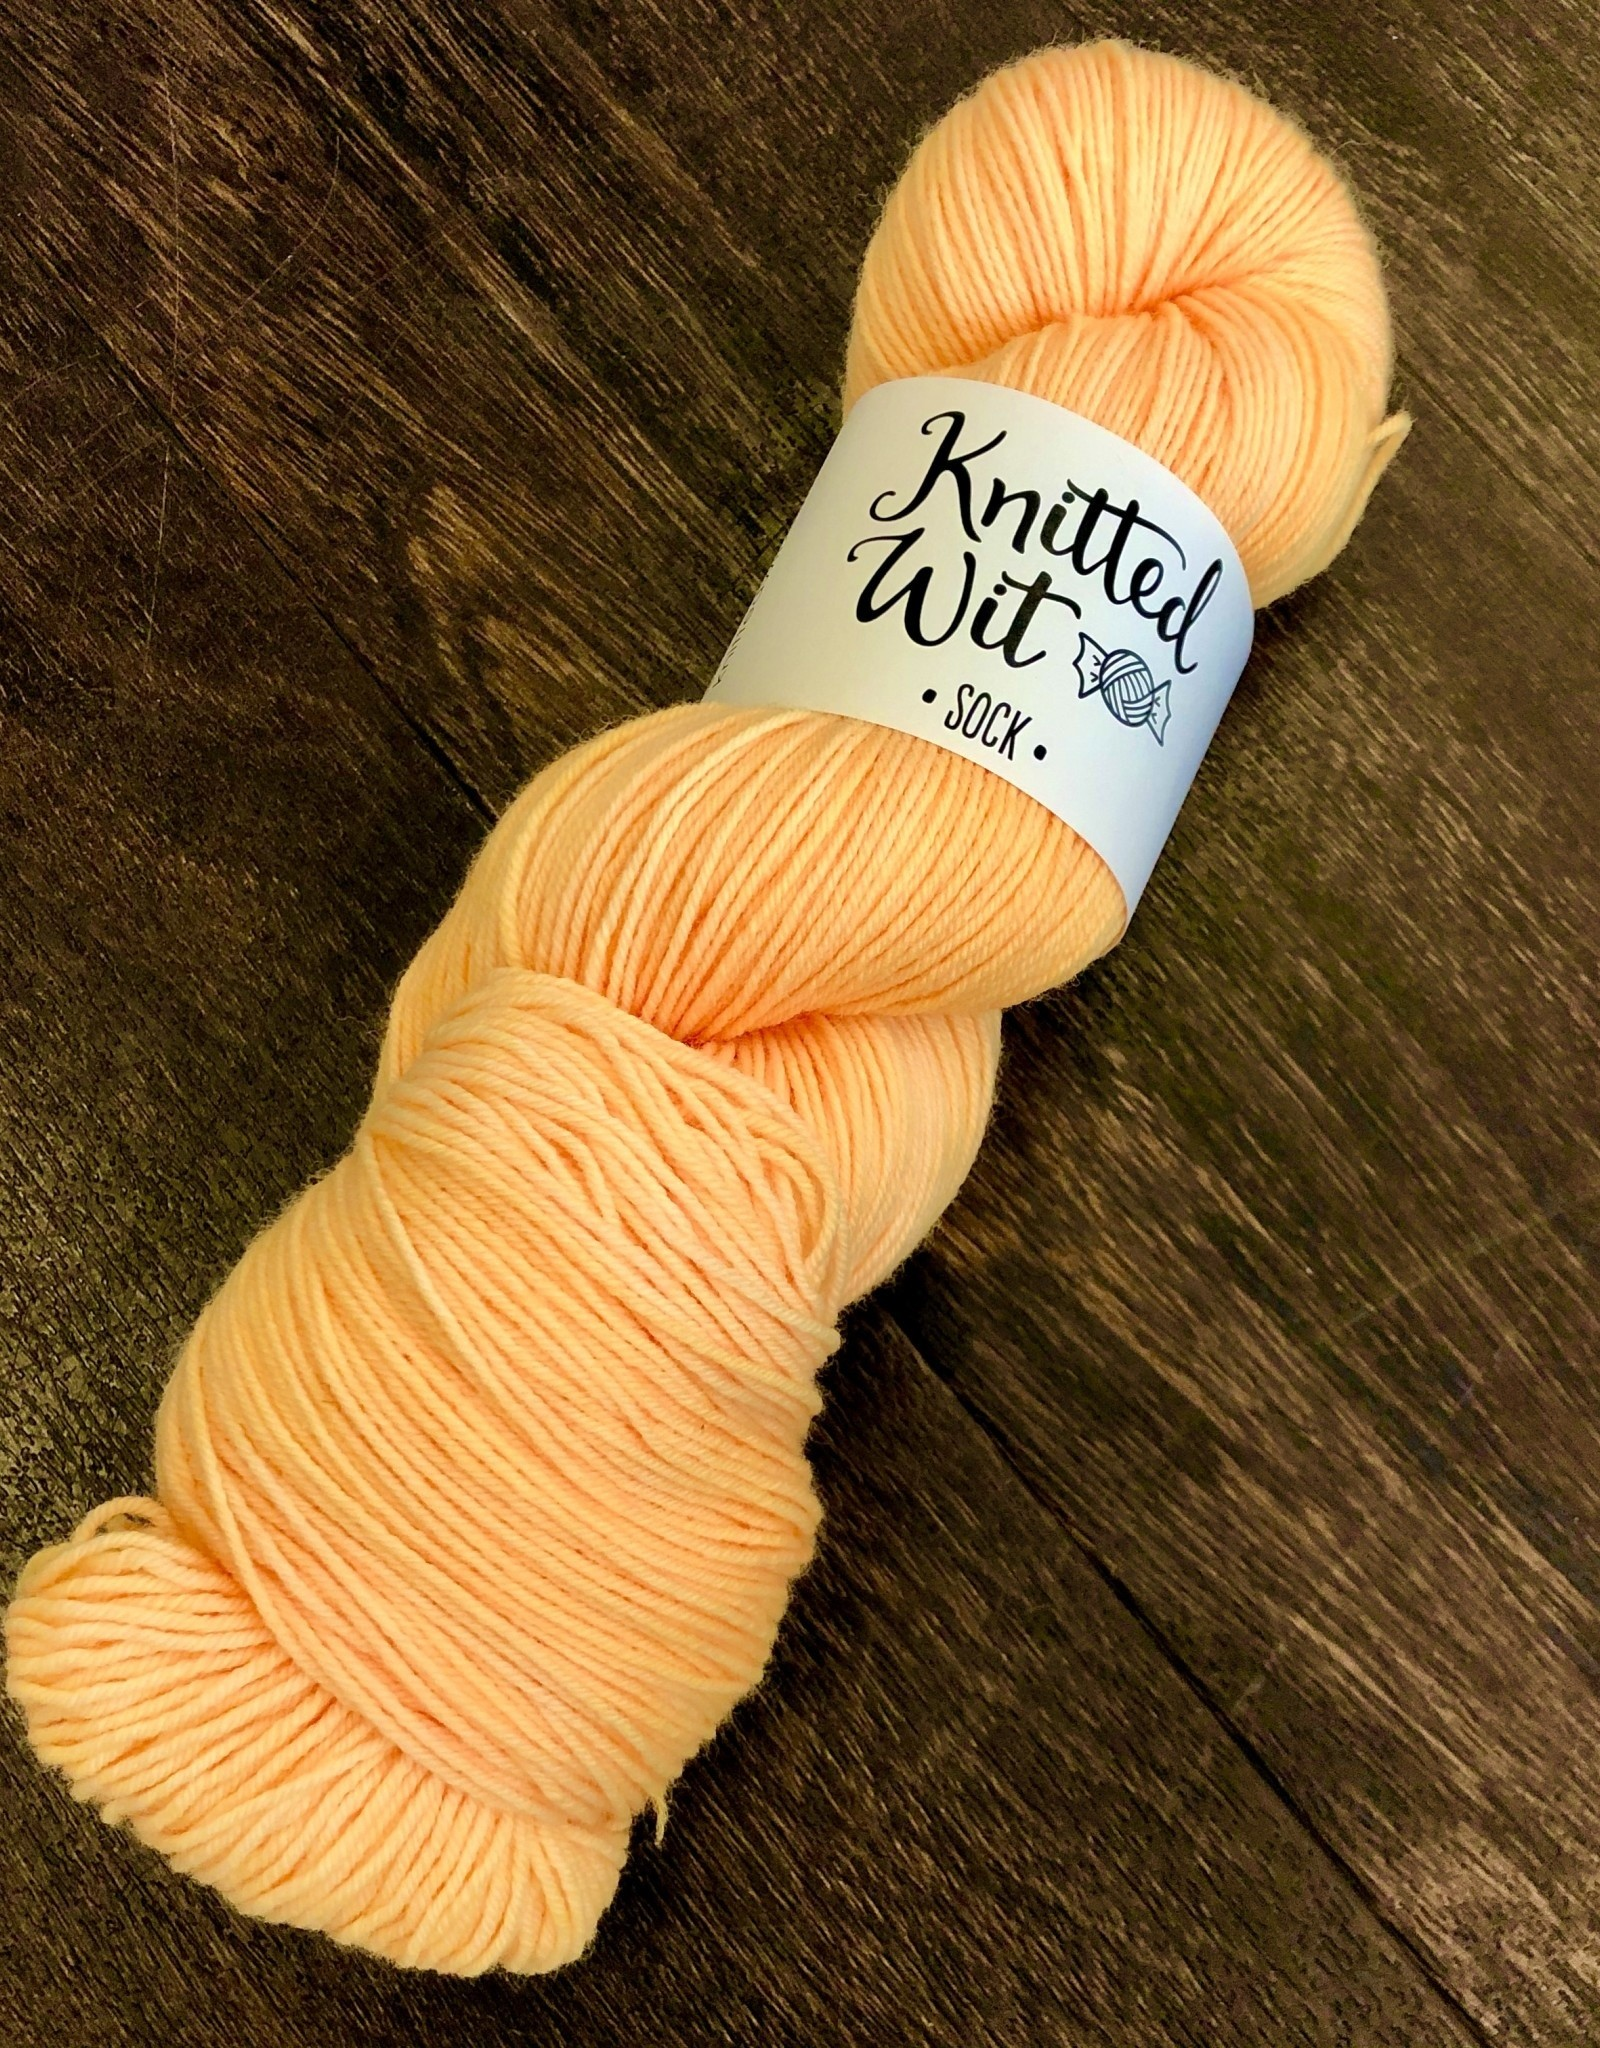 Knitted Wit Victory Sock by Knitted Wit -- Solids/Tonals